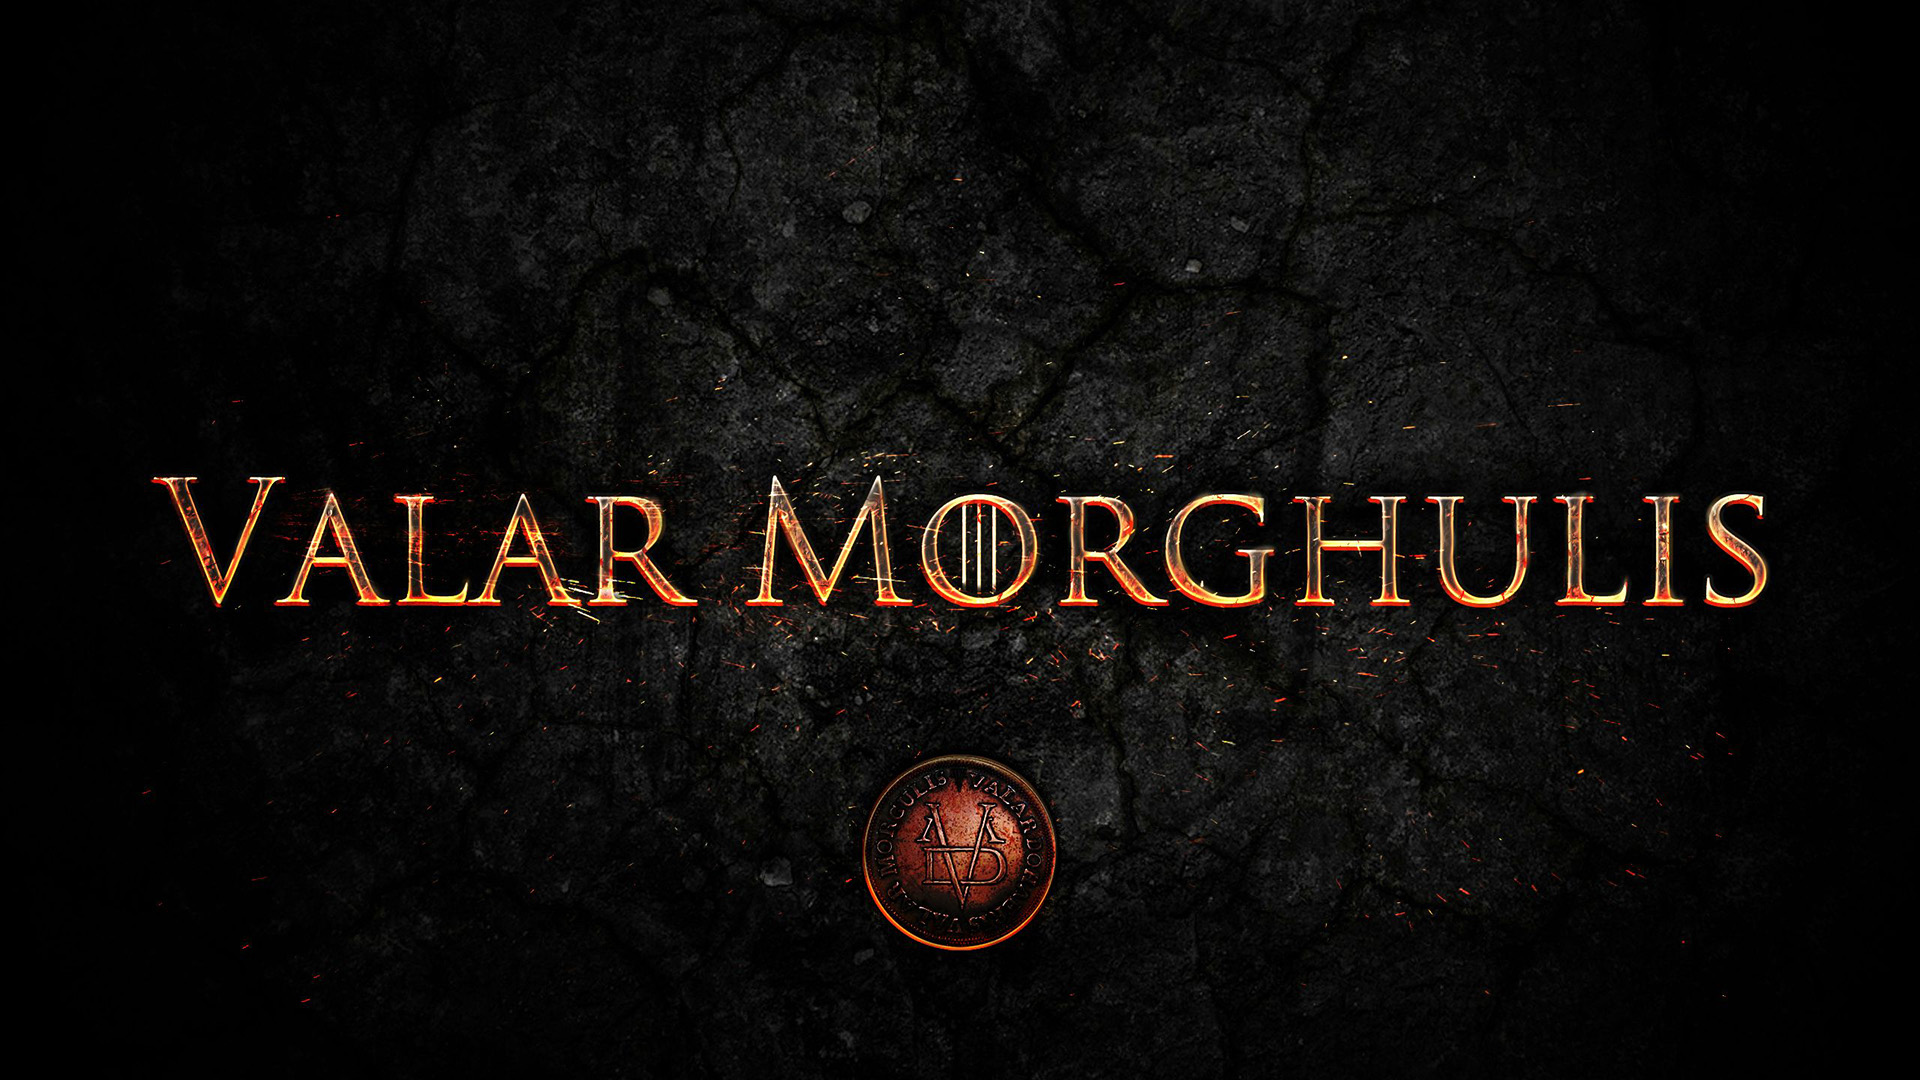 image - valar-morghulis-game-of-thrones-wallpaper-6 | epic rap